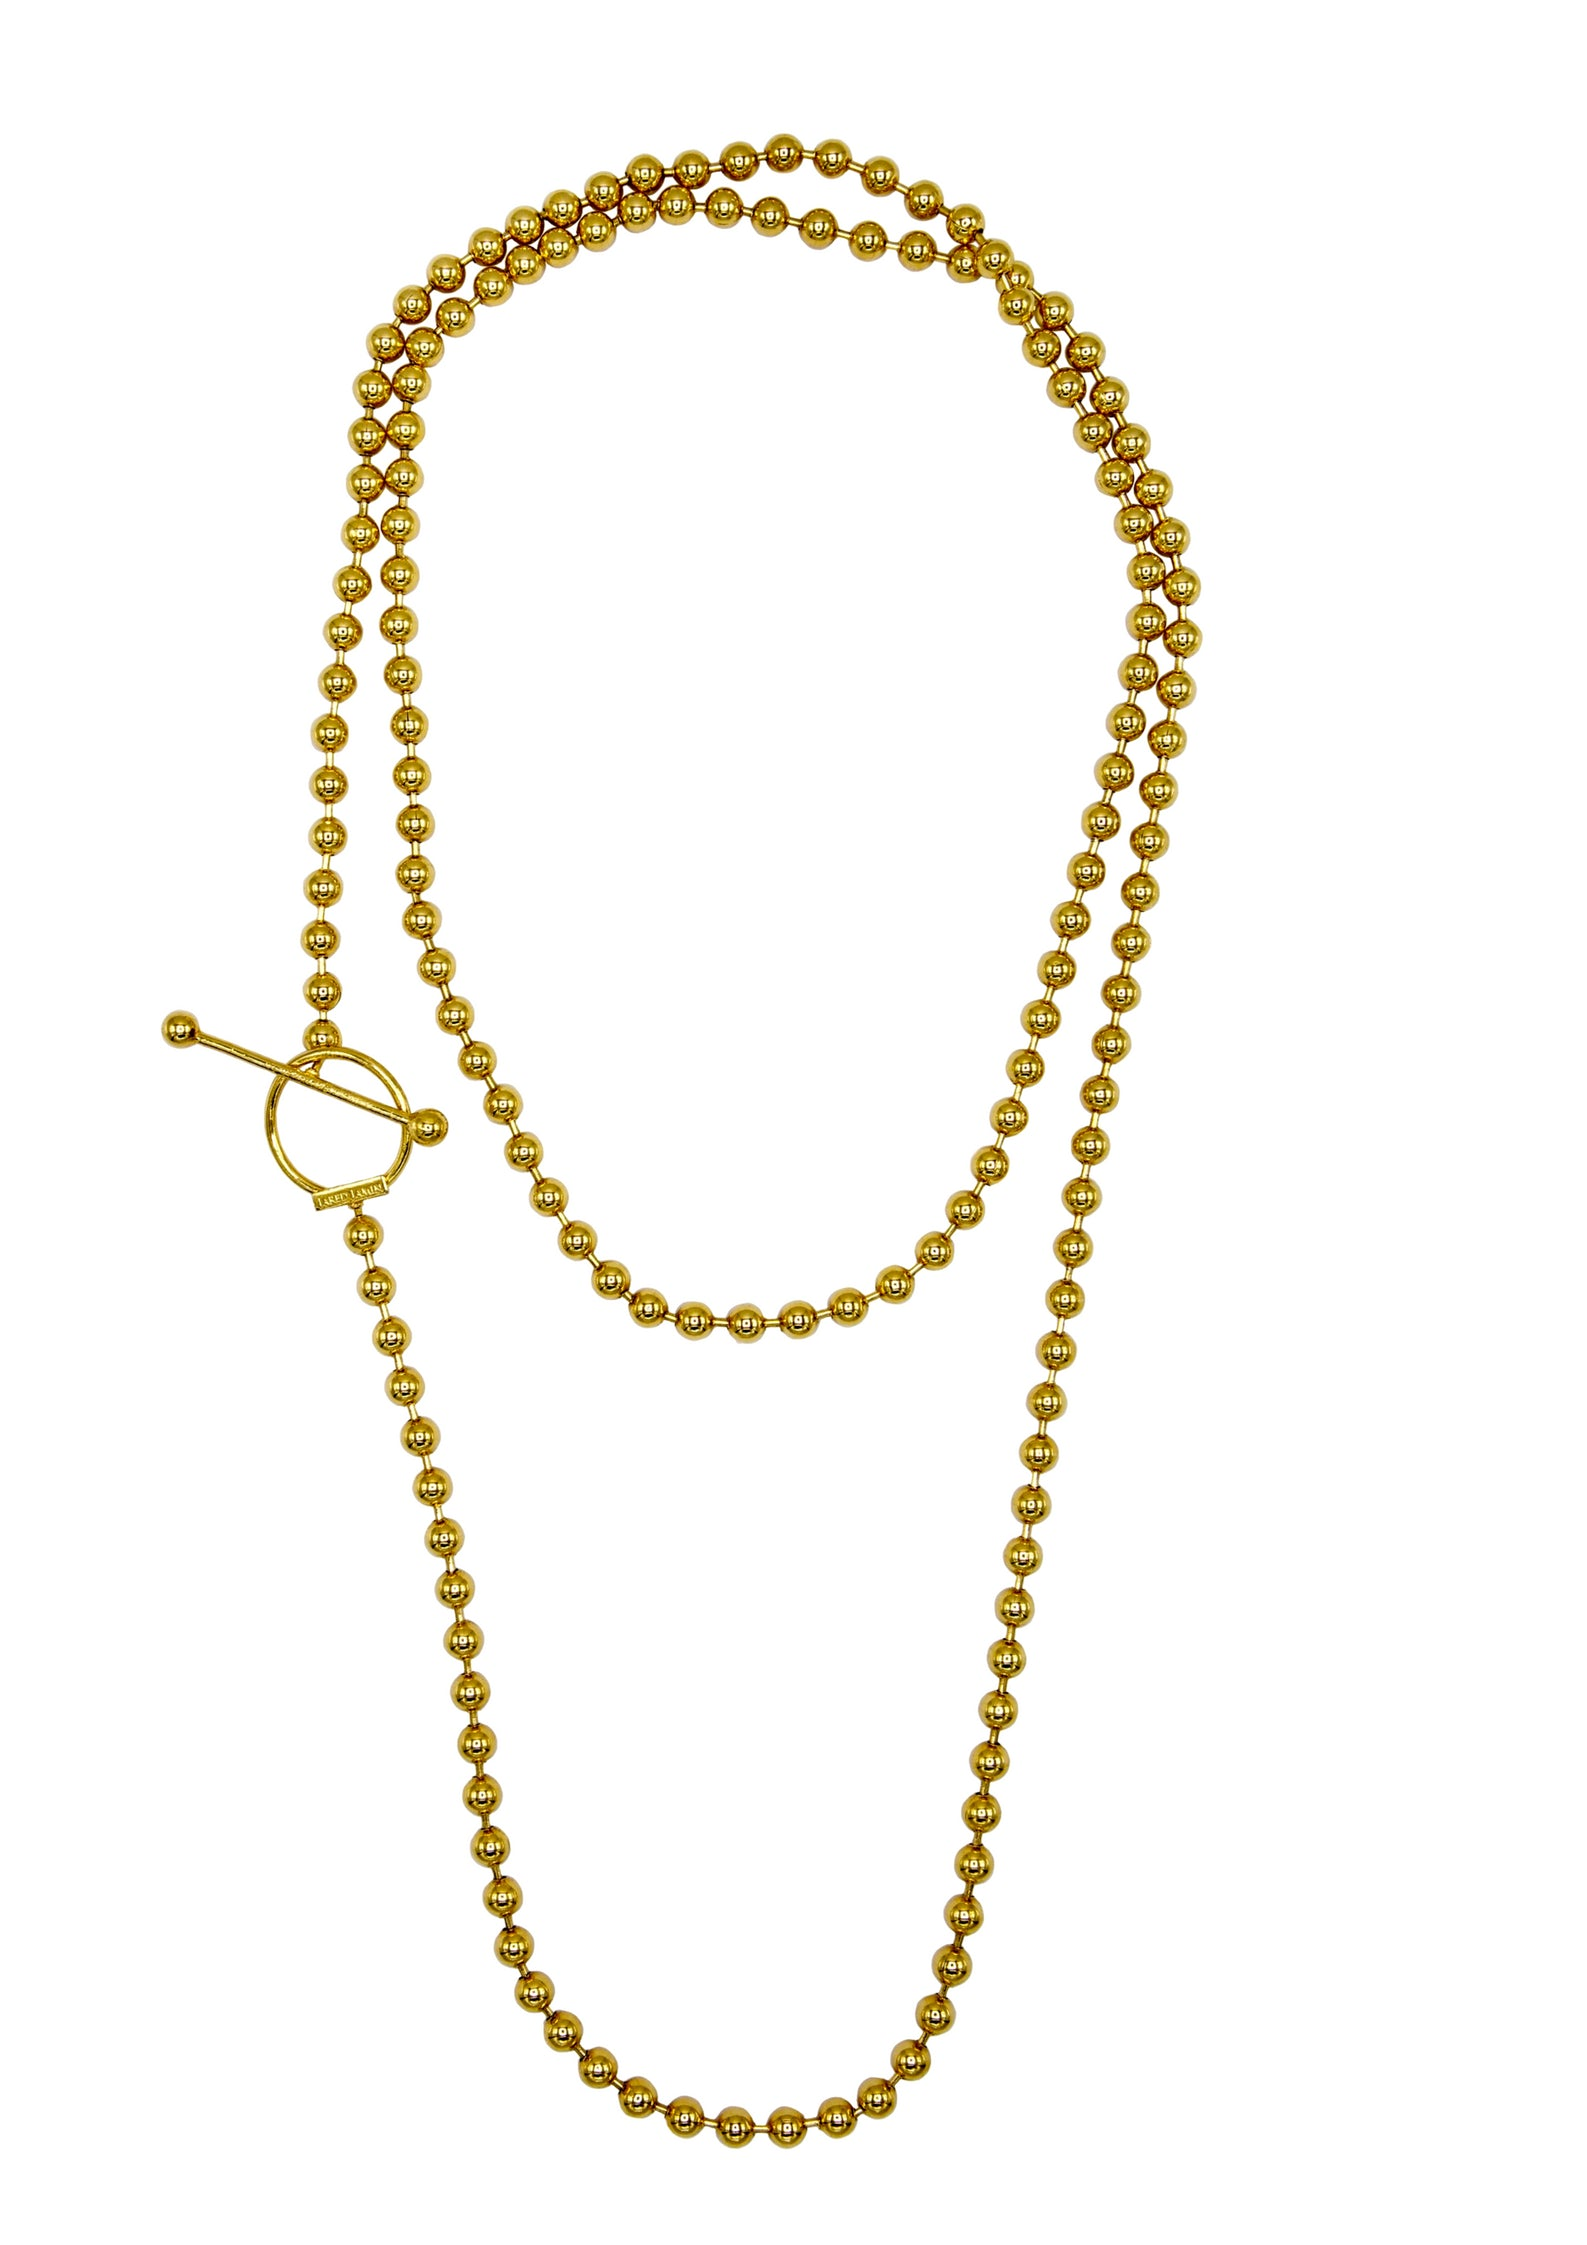 Gold Constellation Orbita Necklace-Necklaces-JAREDJAMIN Jewelry Online-JARED JAMIN